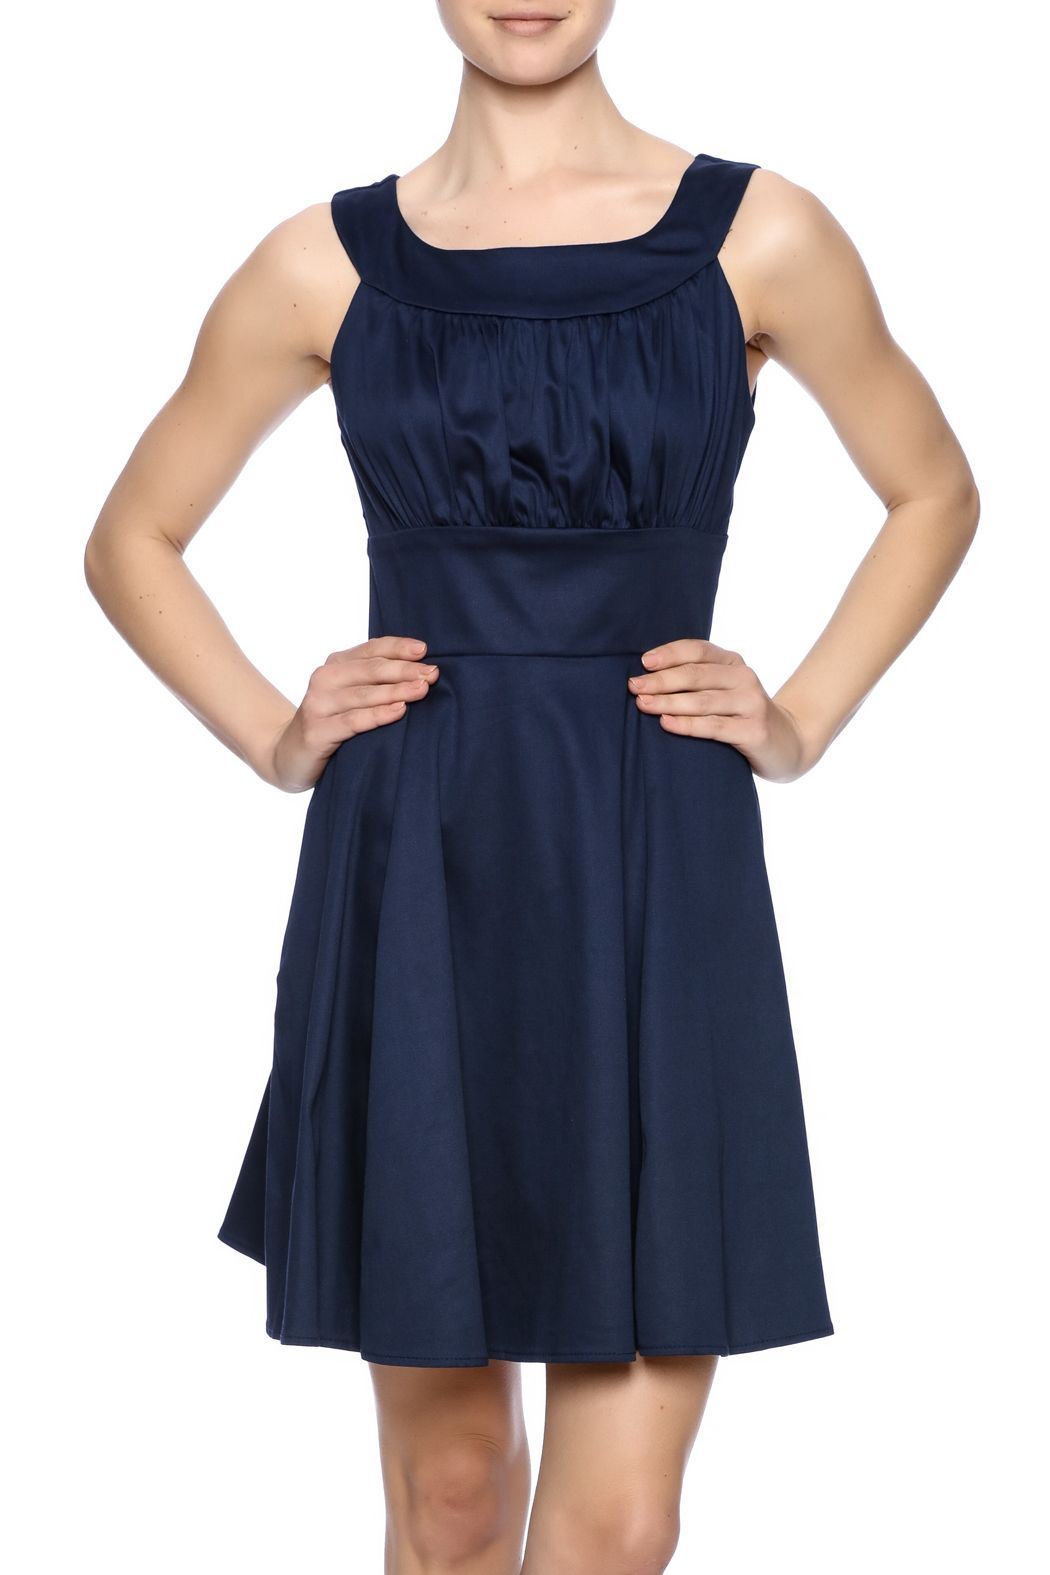 The essential navy sheath dress features a fitted waist, ruching at the bust and a zipper back closure.   Sleeveless Sheath Dress by Ixia. Clothing - Dresses - Cocktail Florida Palm Beach, Florida